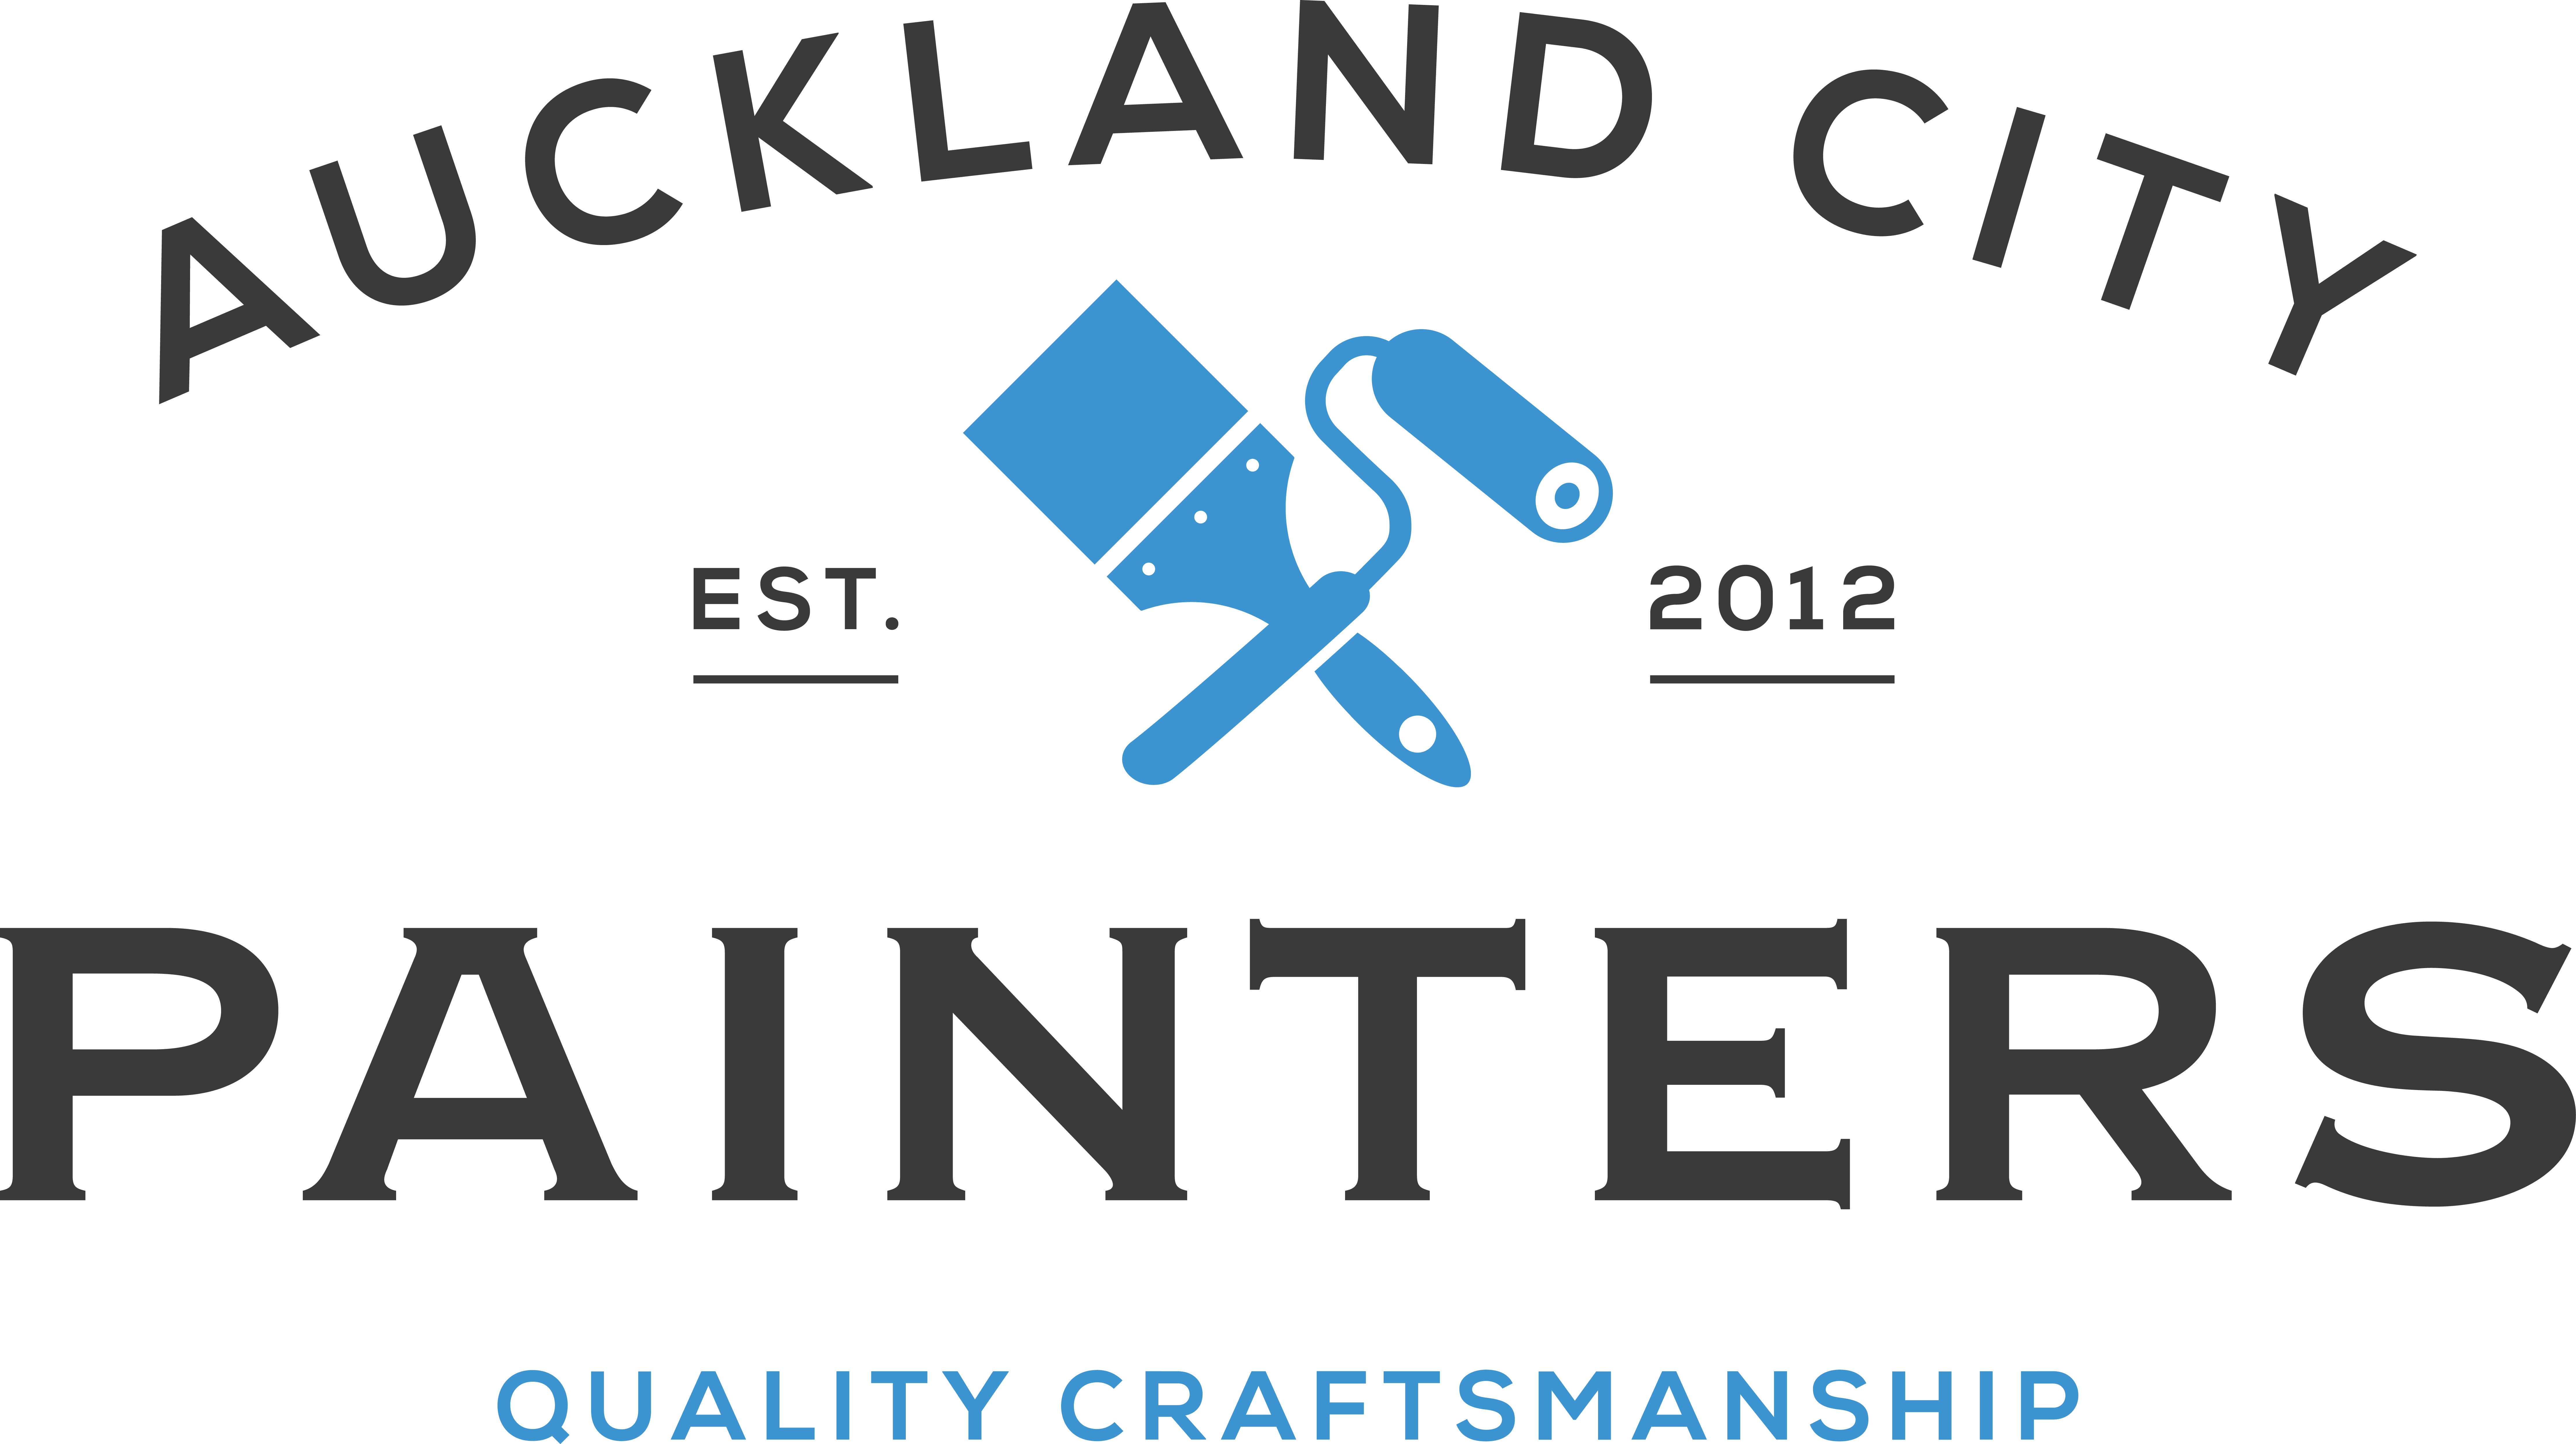 Auckland City Painters Ltd